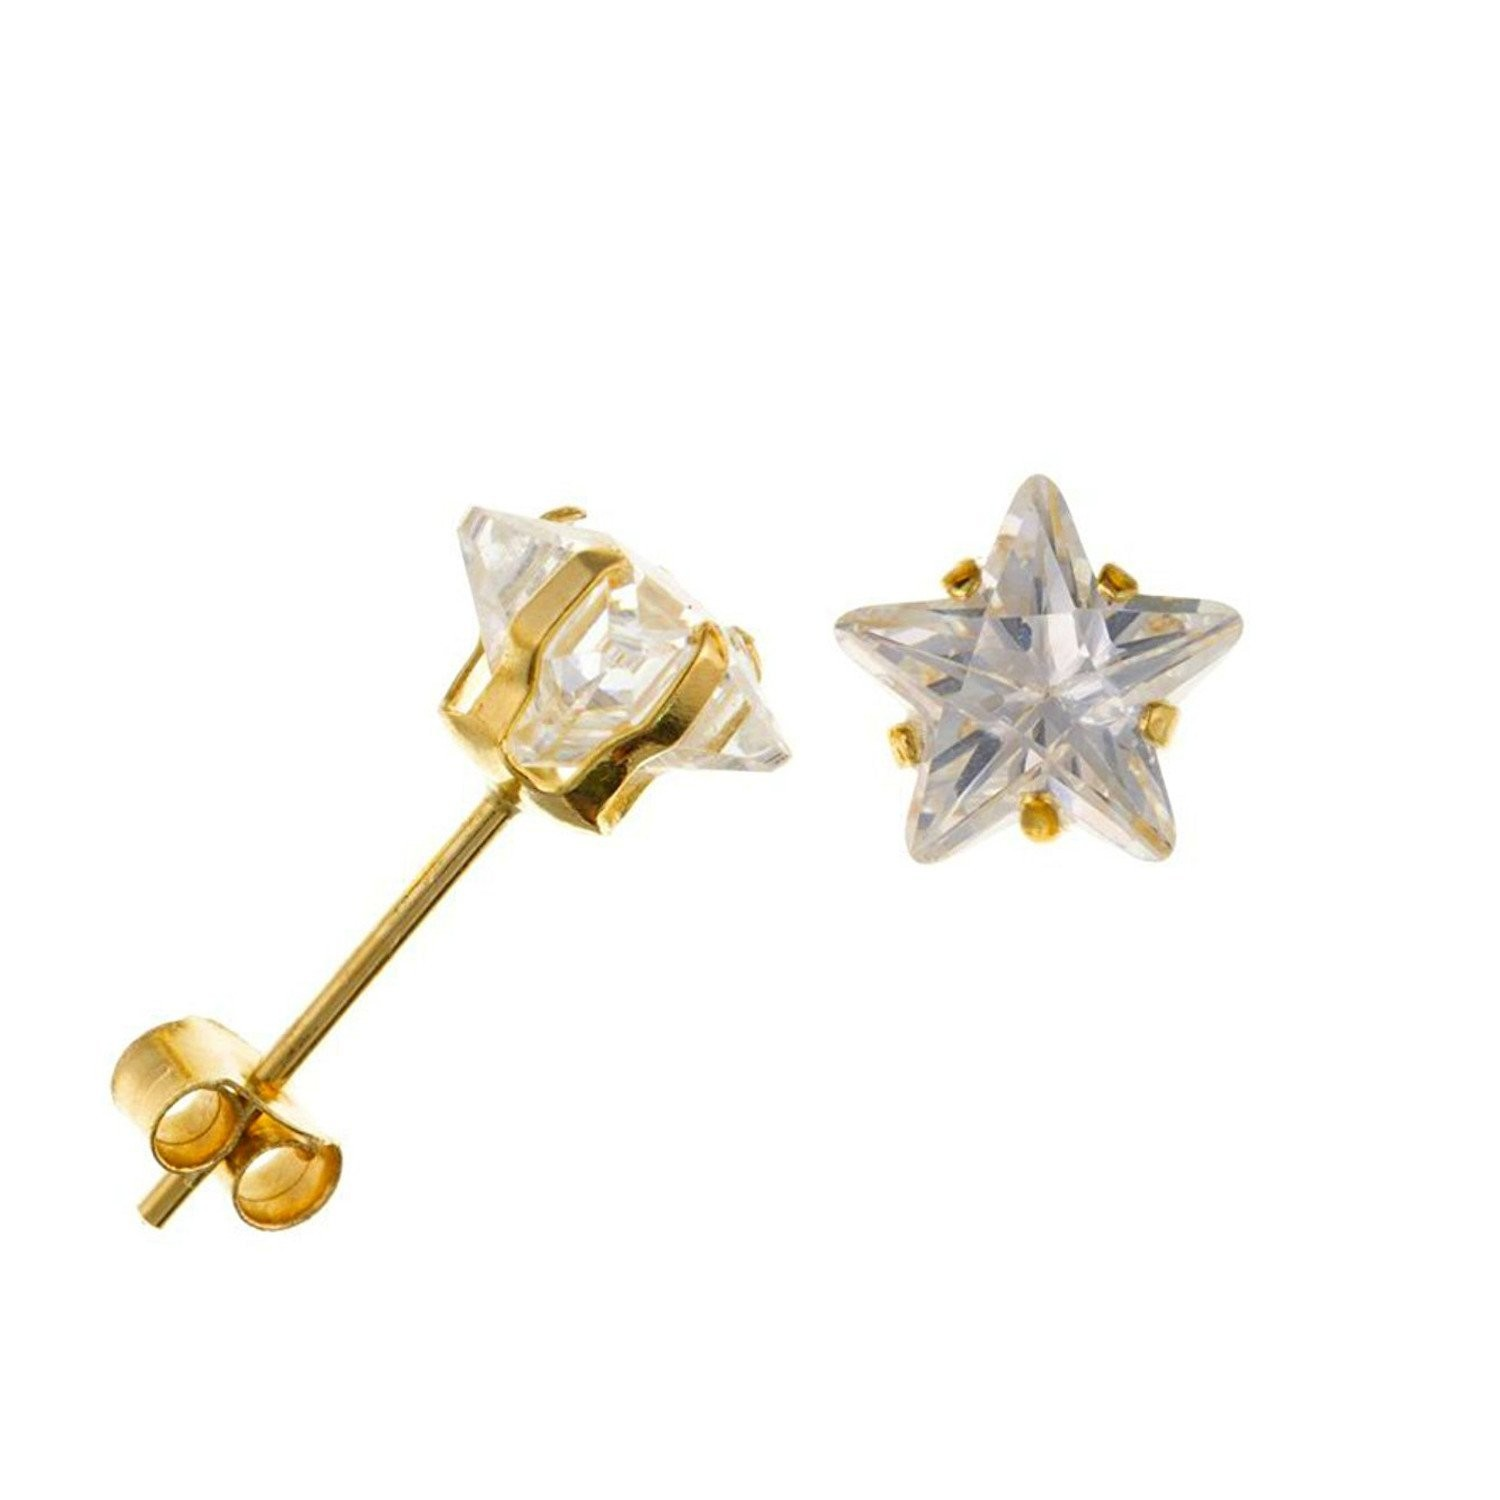 Arranview Jewellery 7mm CZ Stud Earring - 9ct Gold With Small (3mm) Butterfly Backs A6uALnth7